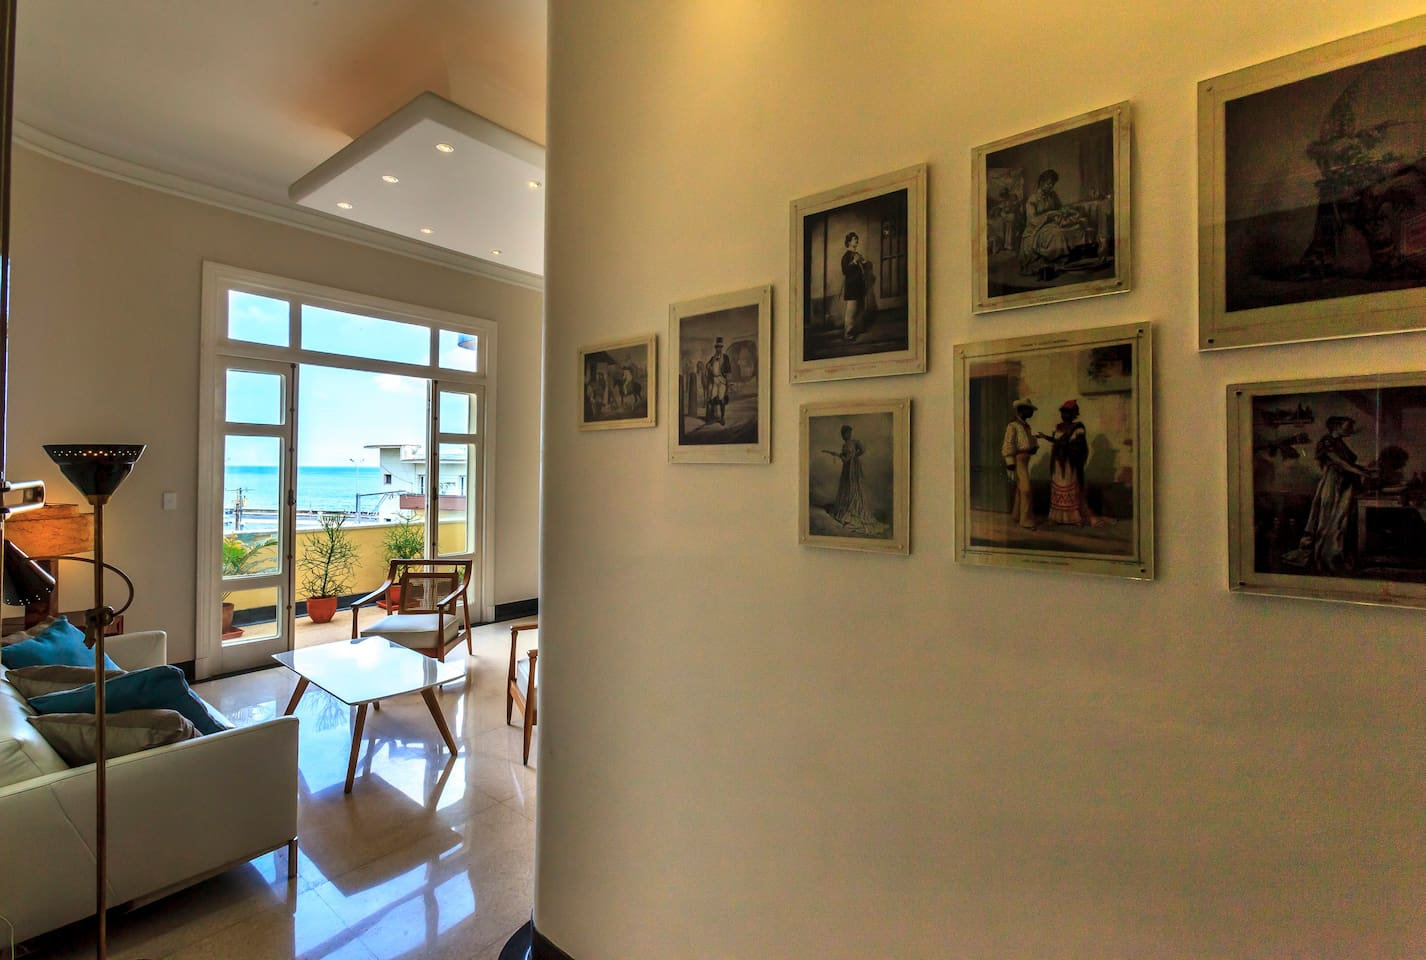 This is the view from the entrance. You can clearly see the ocean and malecon as you enter the apartment